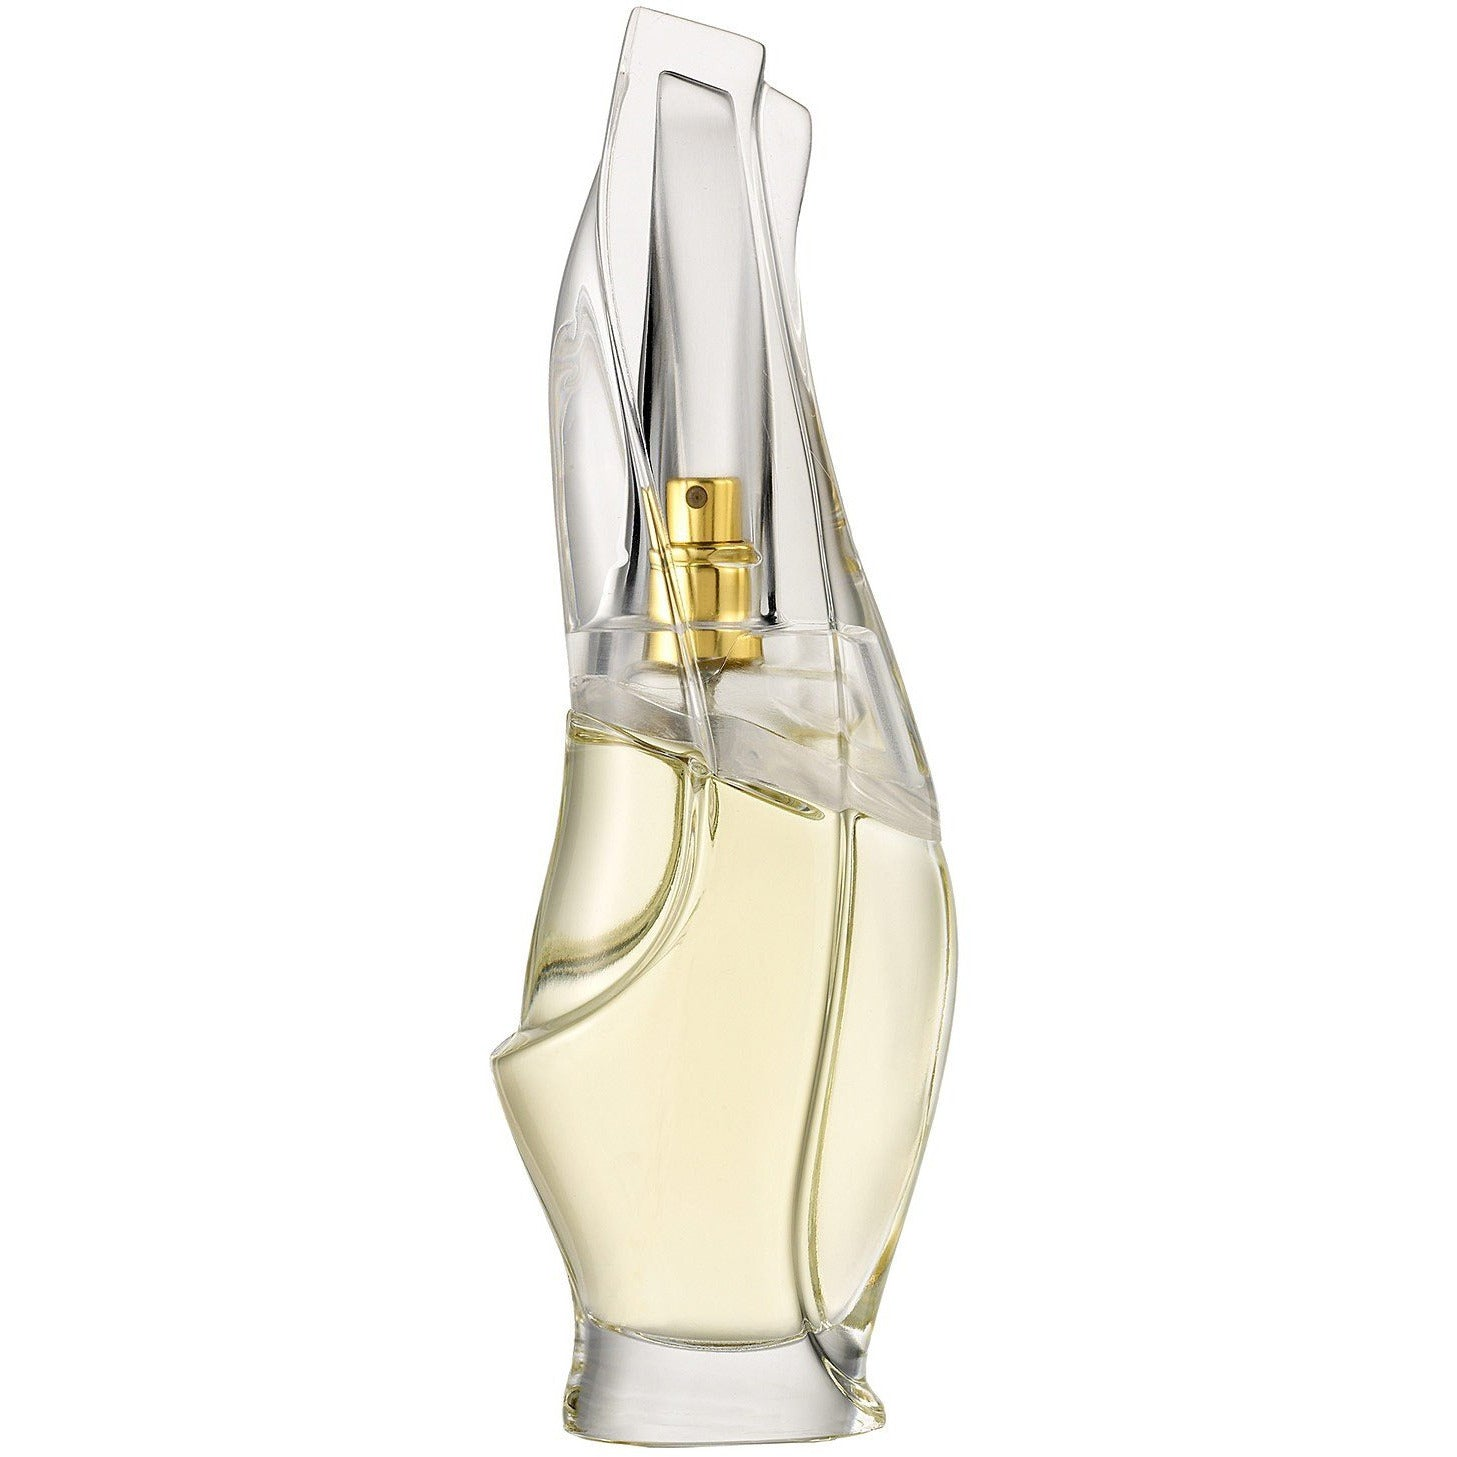 cashmere-mist-by-donna-karan-perfume-3-4-oz-edp-new-tester